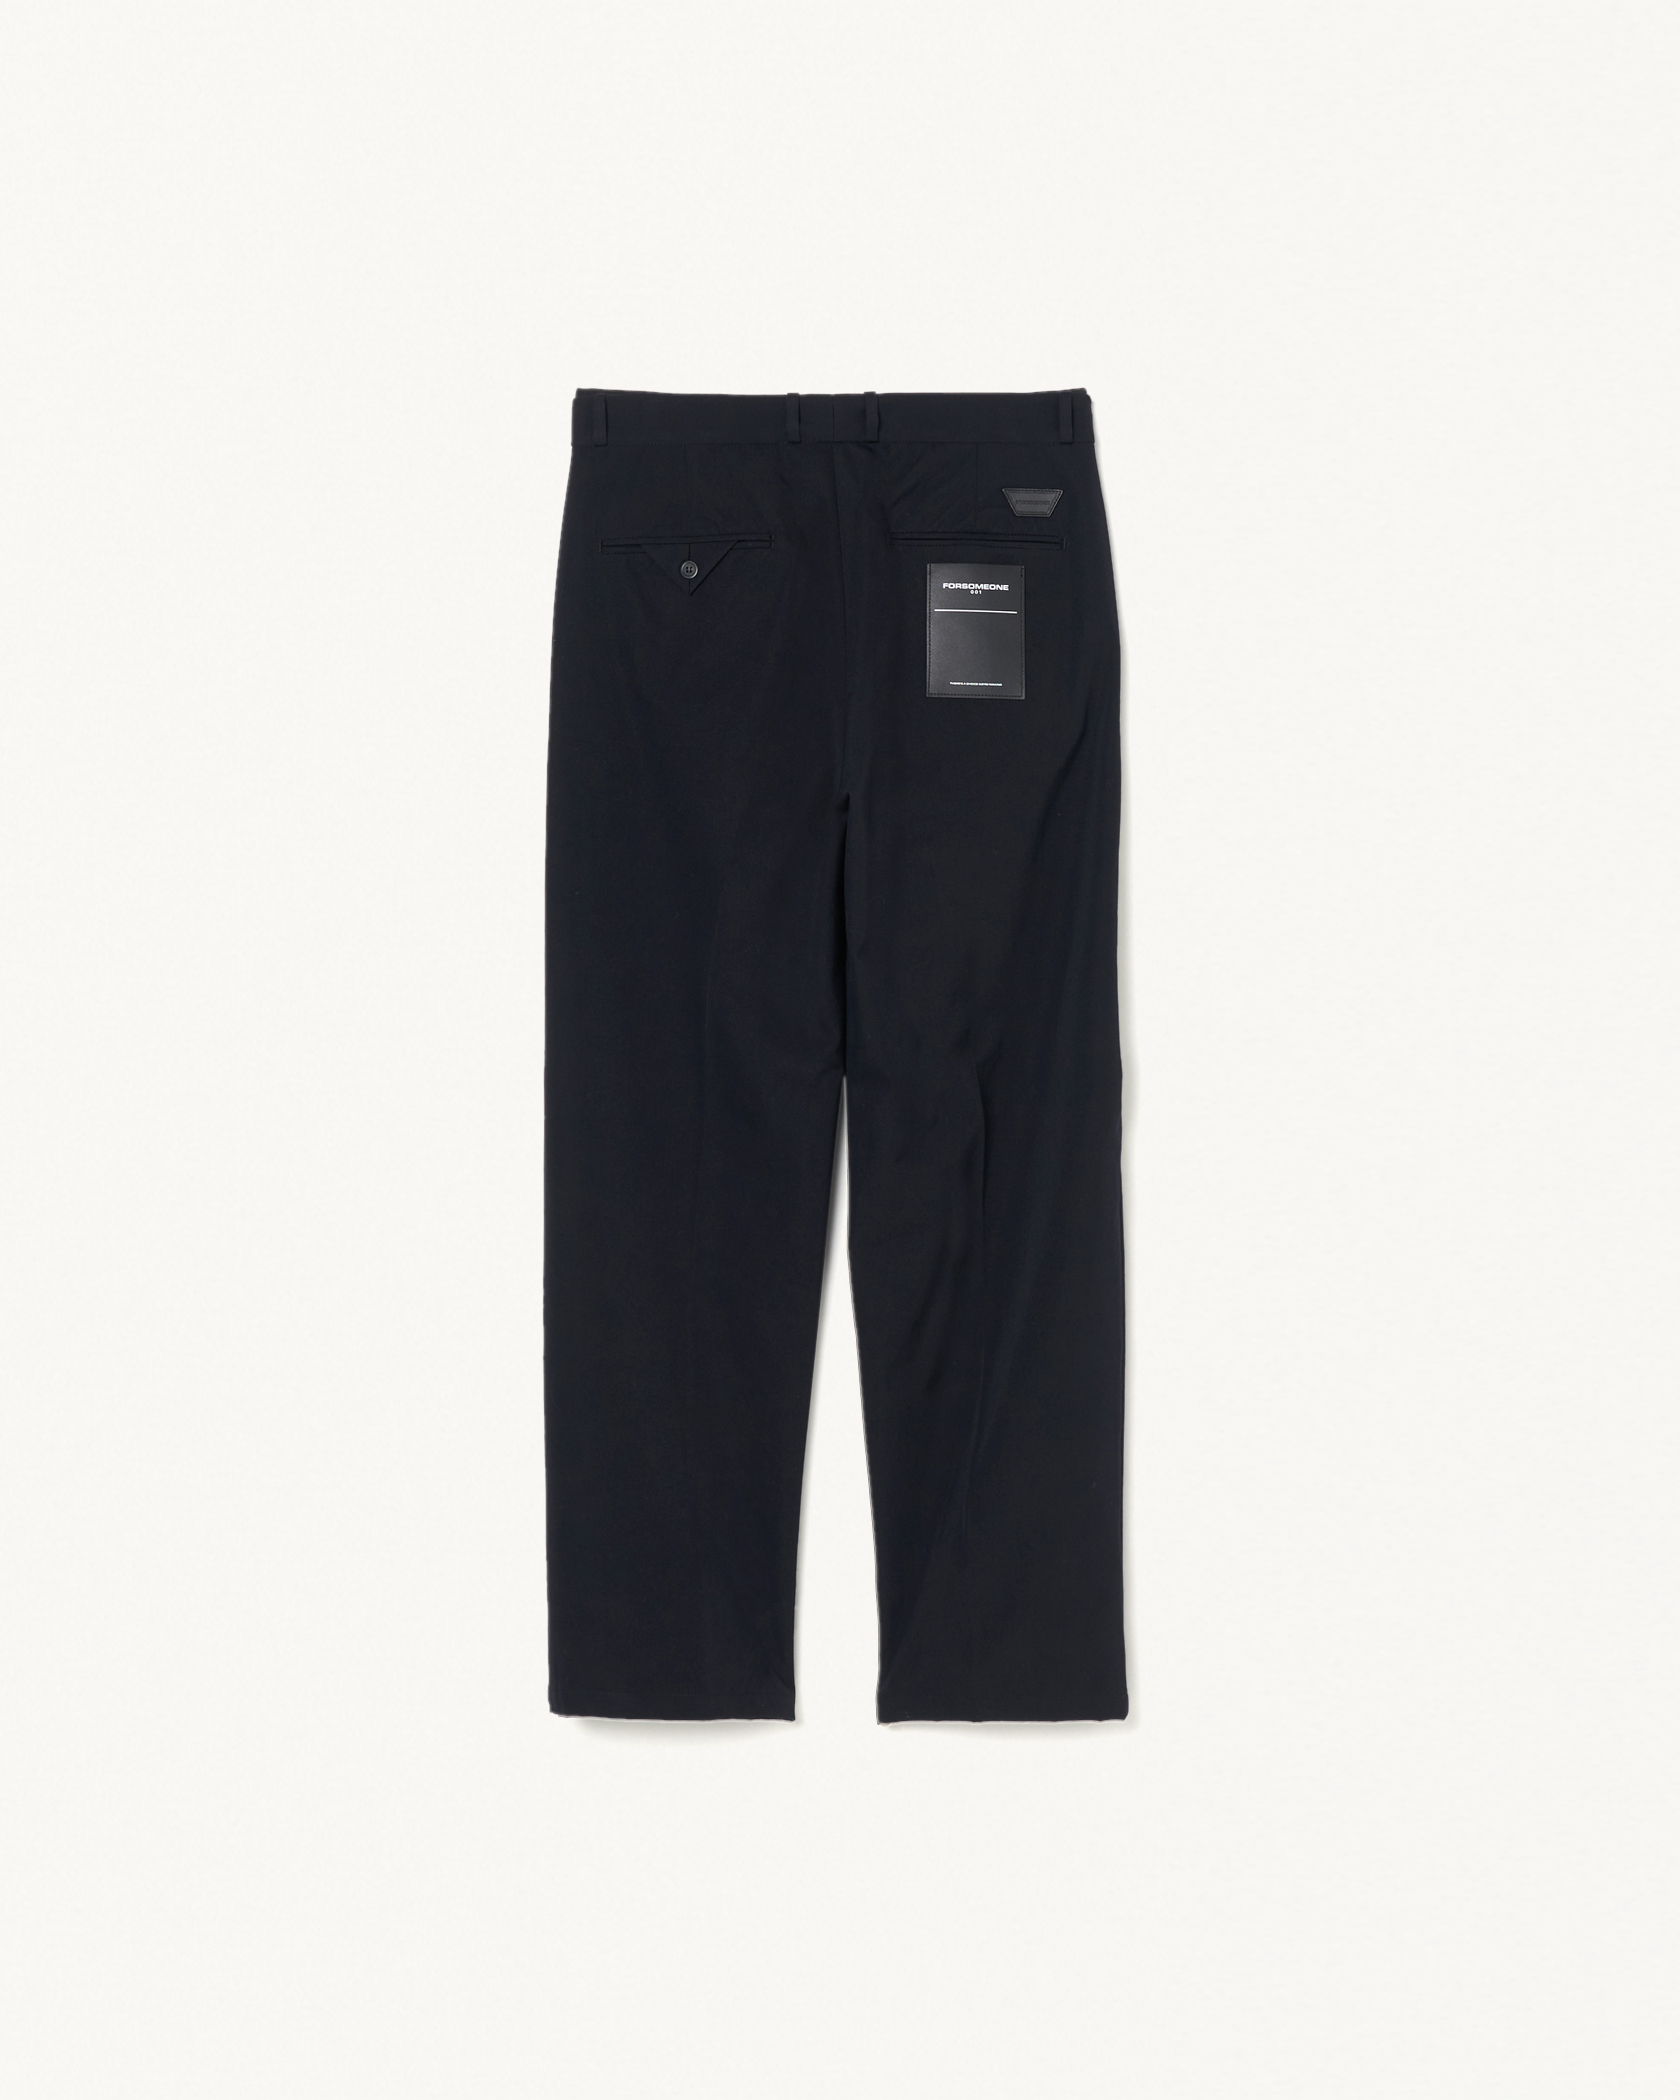 WORK TROUSERS 詳細画像 Navy 4